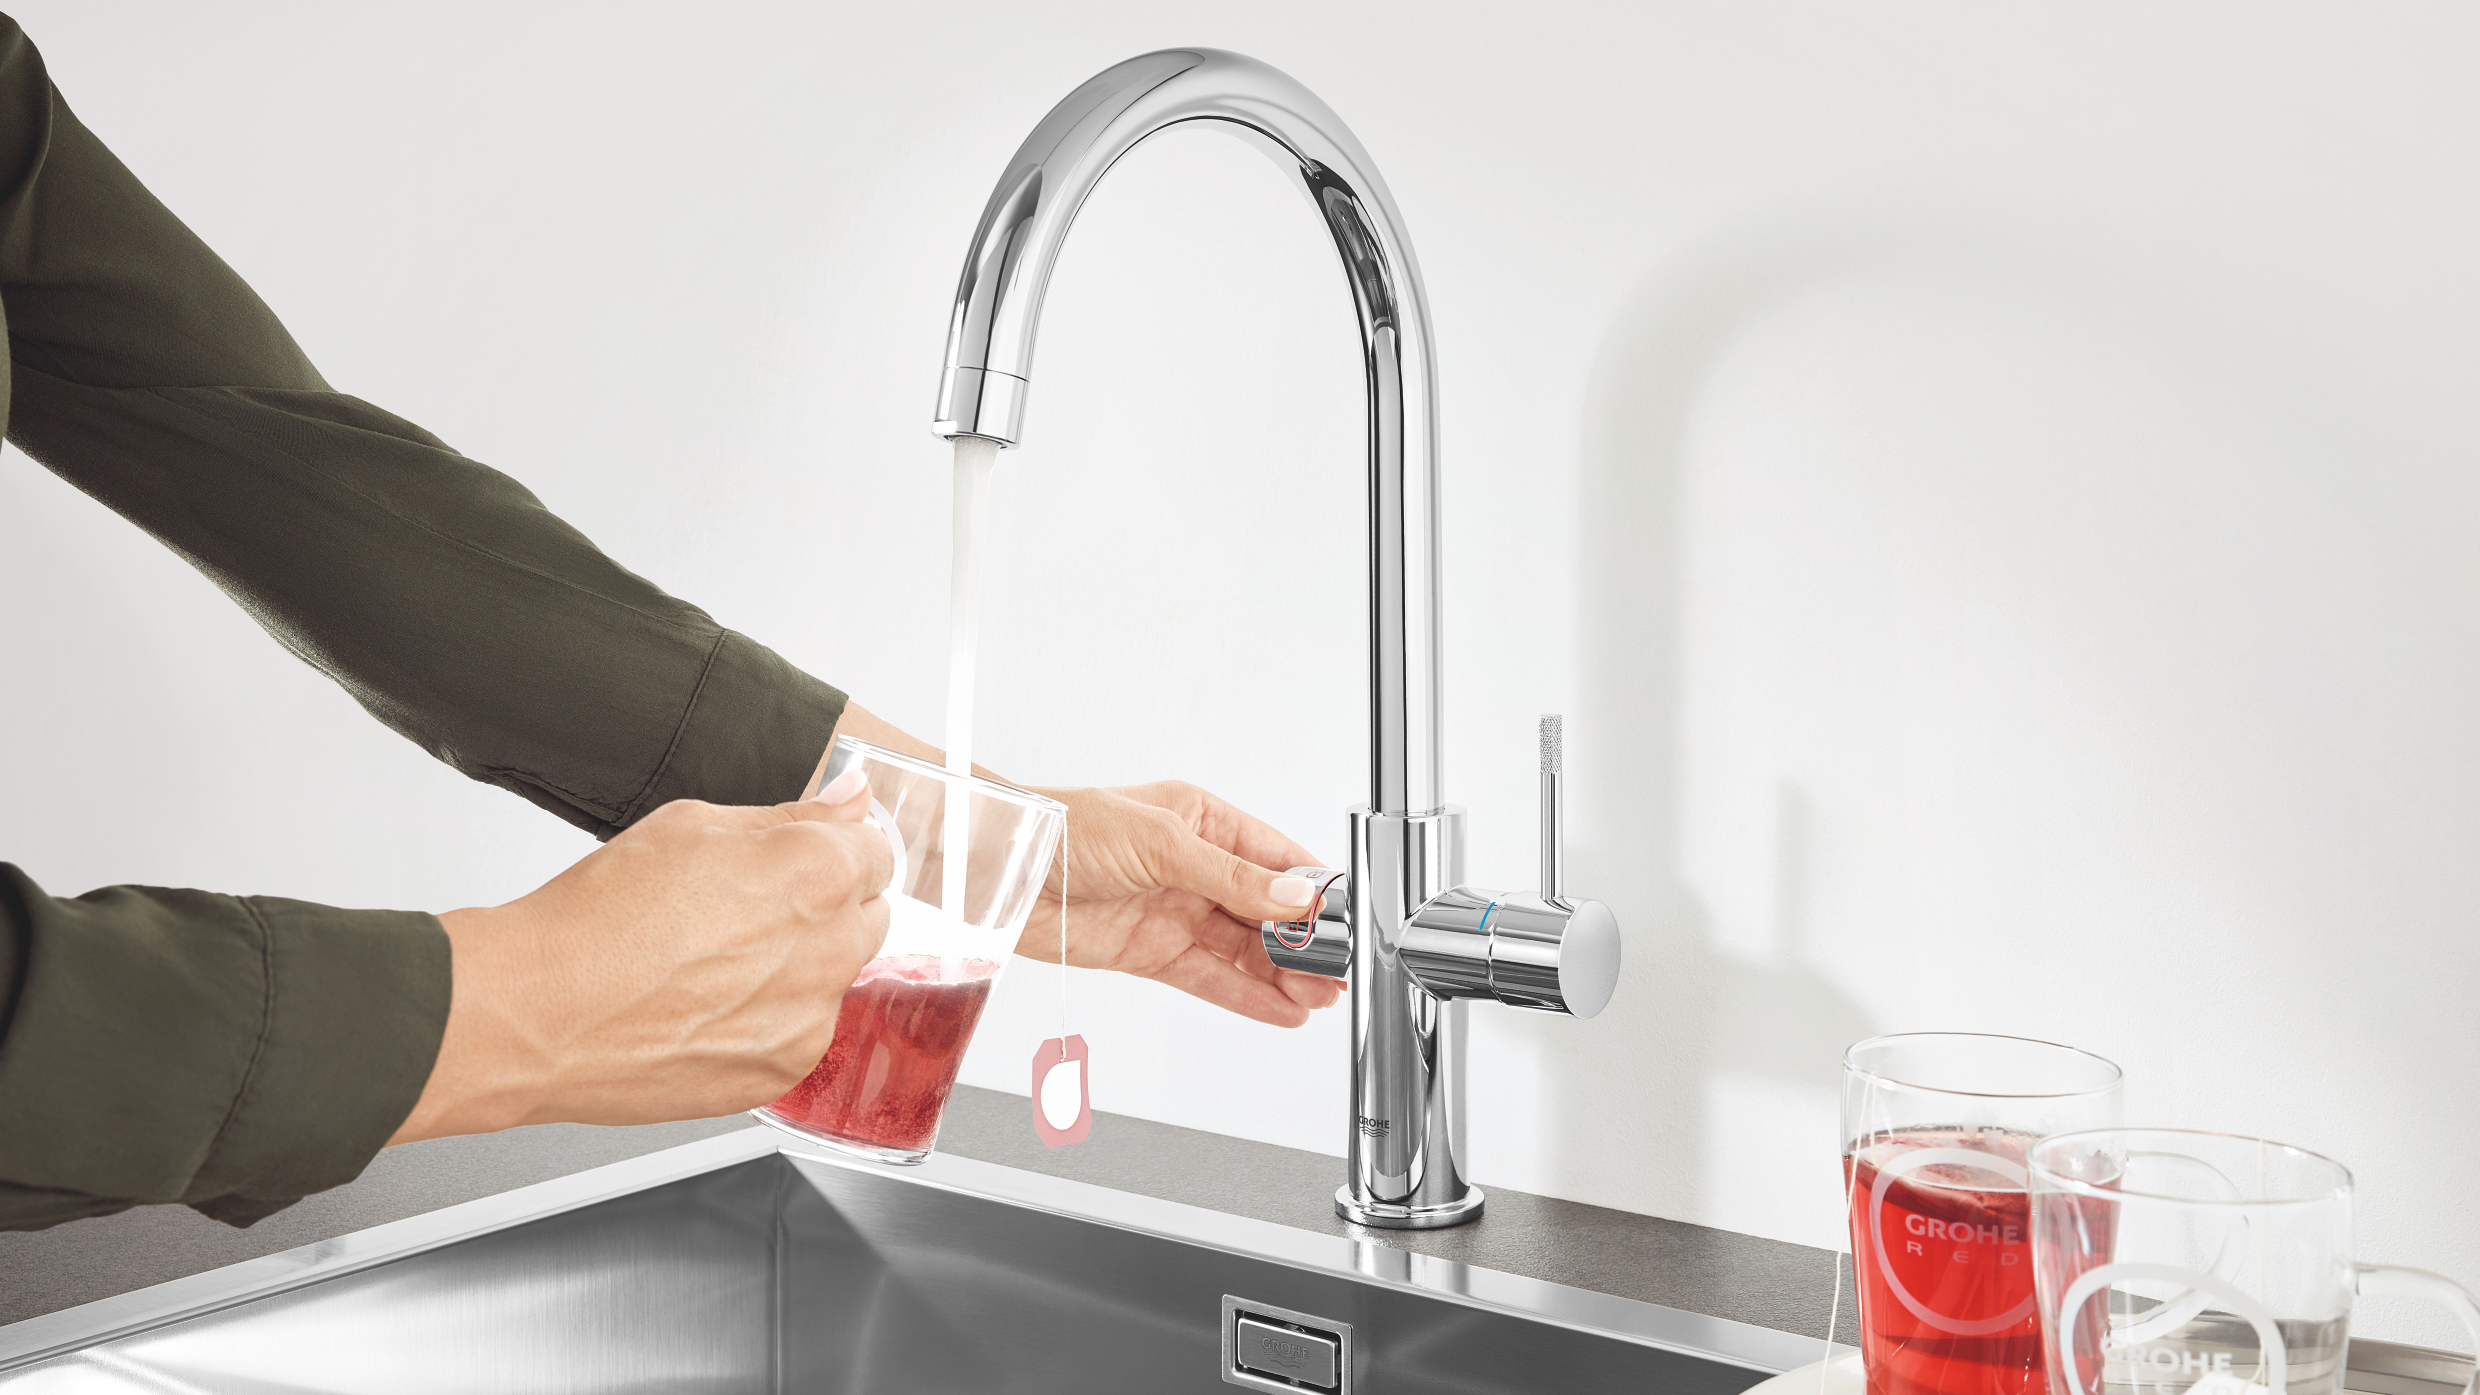 Geyser Water Filter vs TAPP Faucet